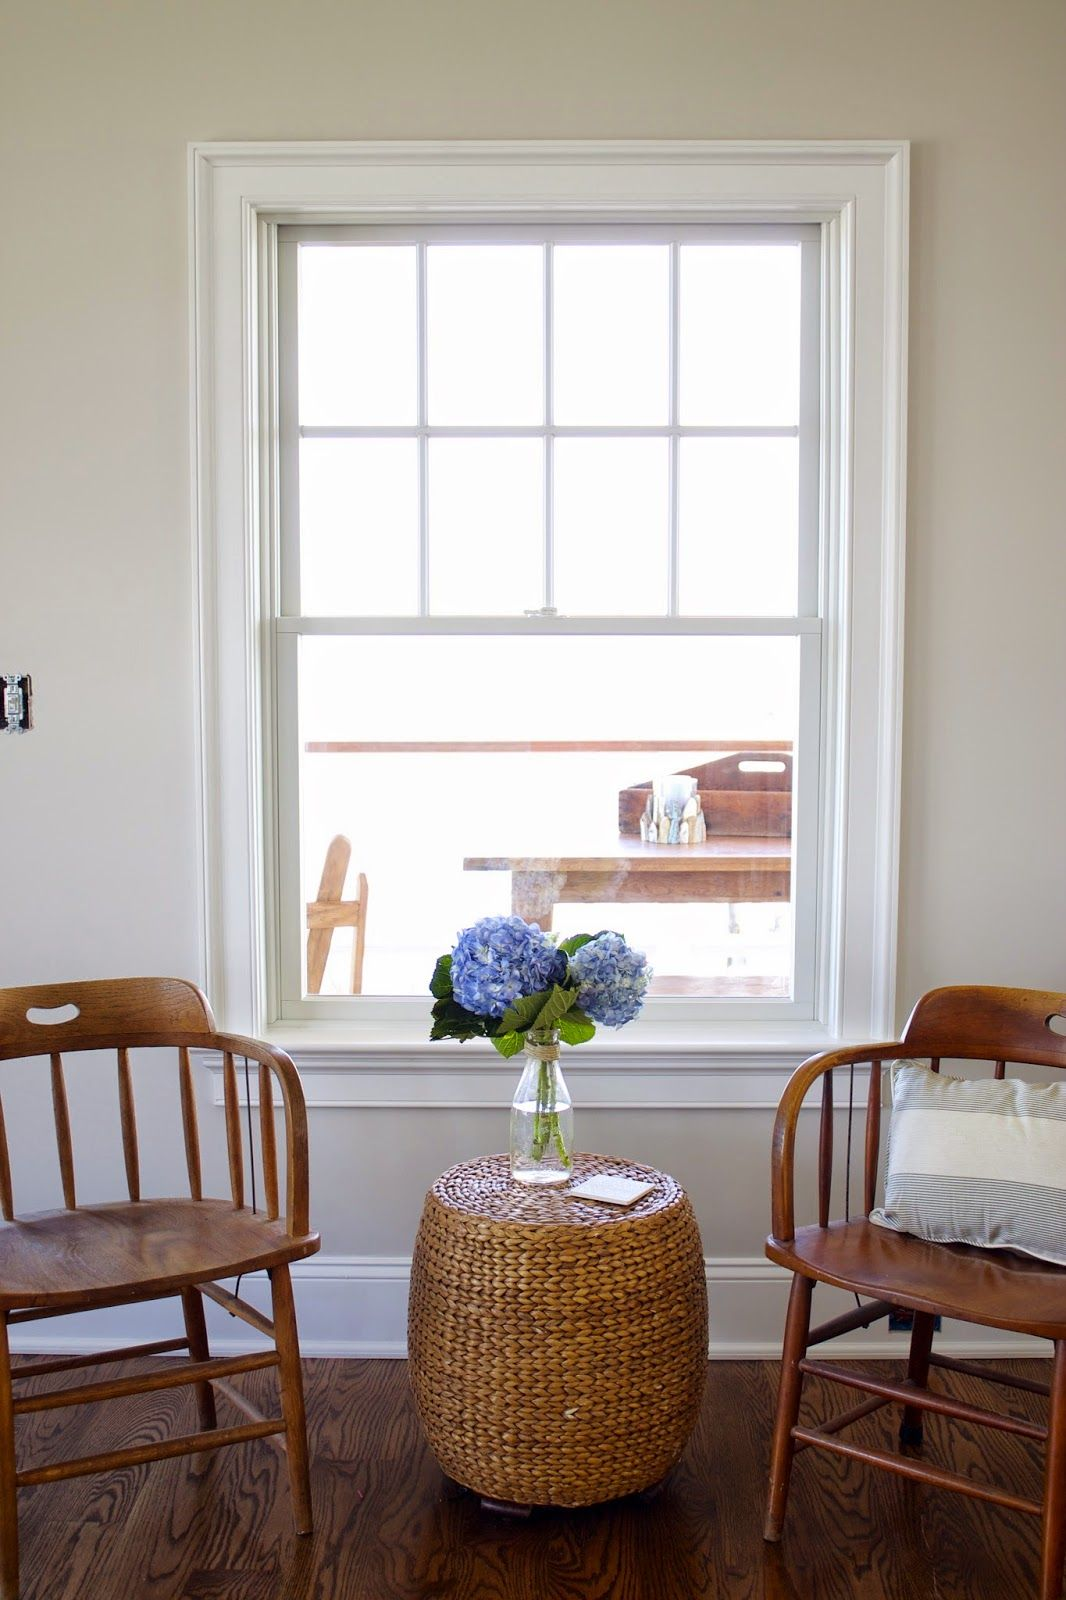 Benjamin Moore Pale Oak walls. Looks great with white trim. | Living ...